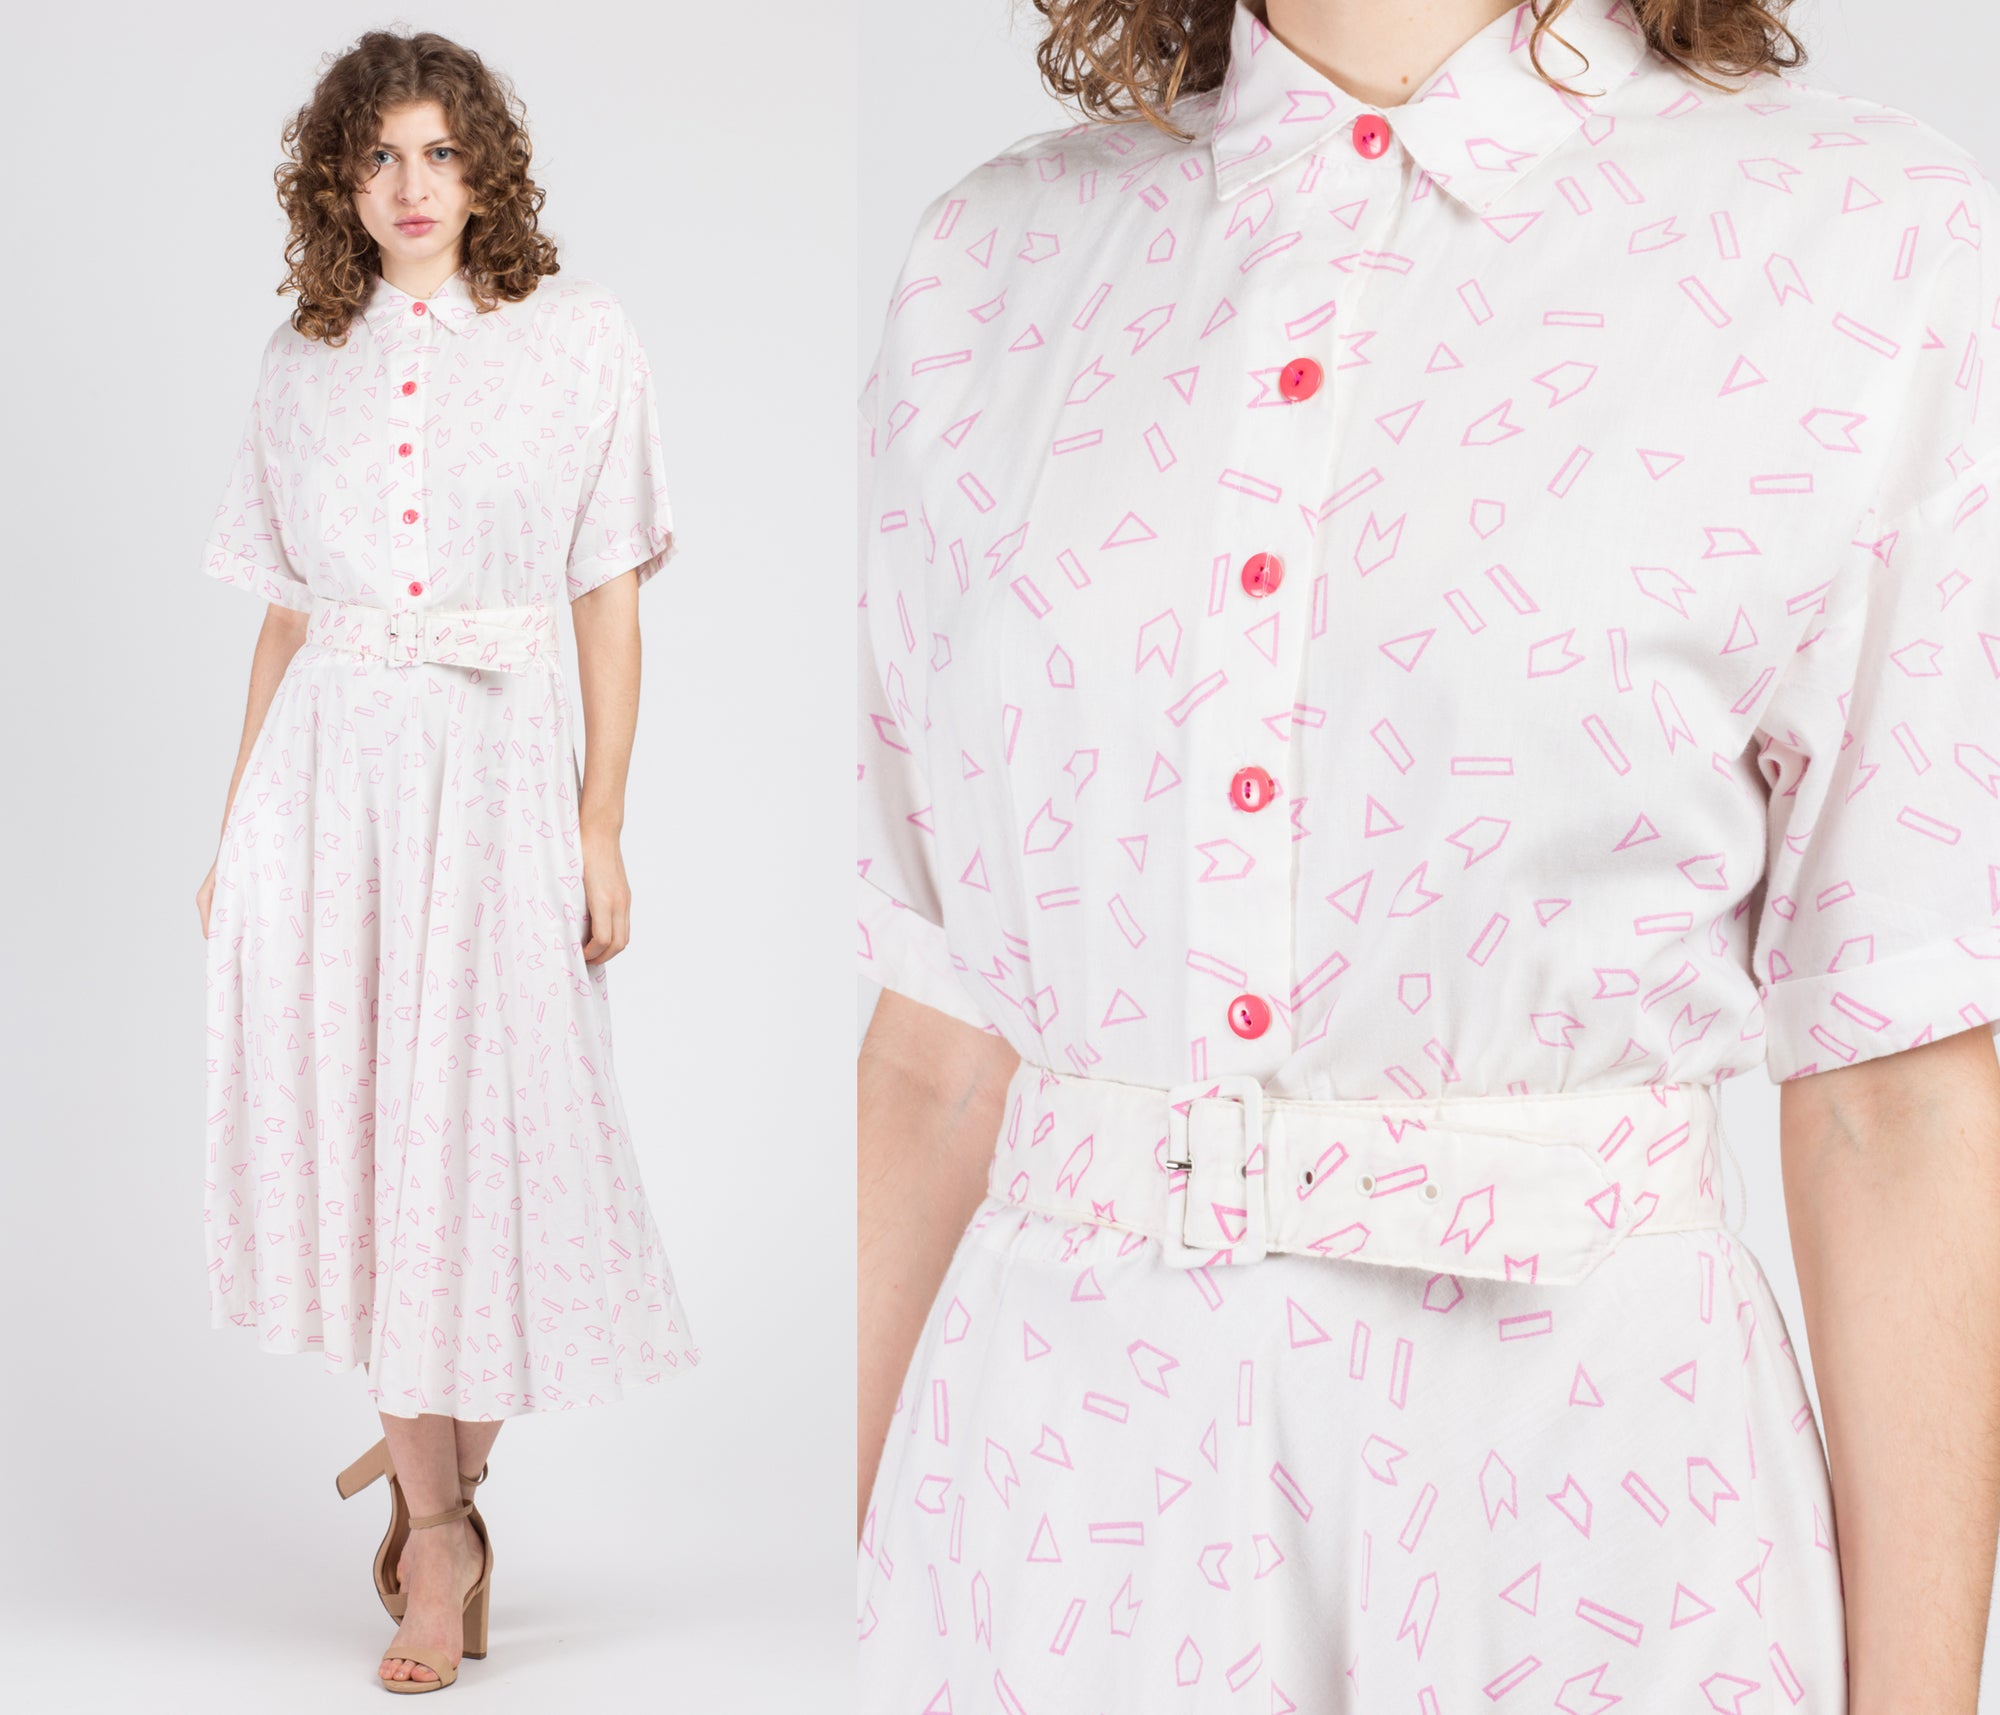 80s Pink & White Geometric Shapes Shirtdress - Medium